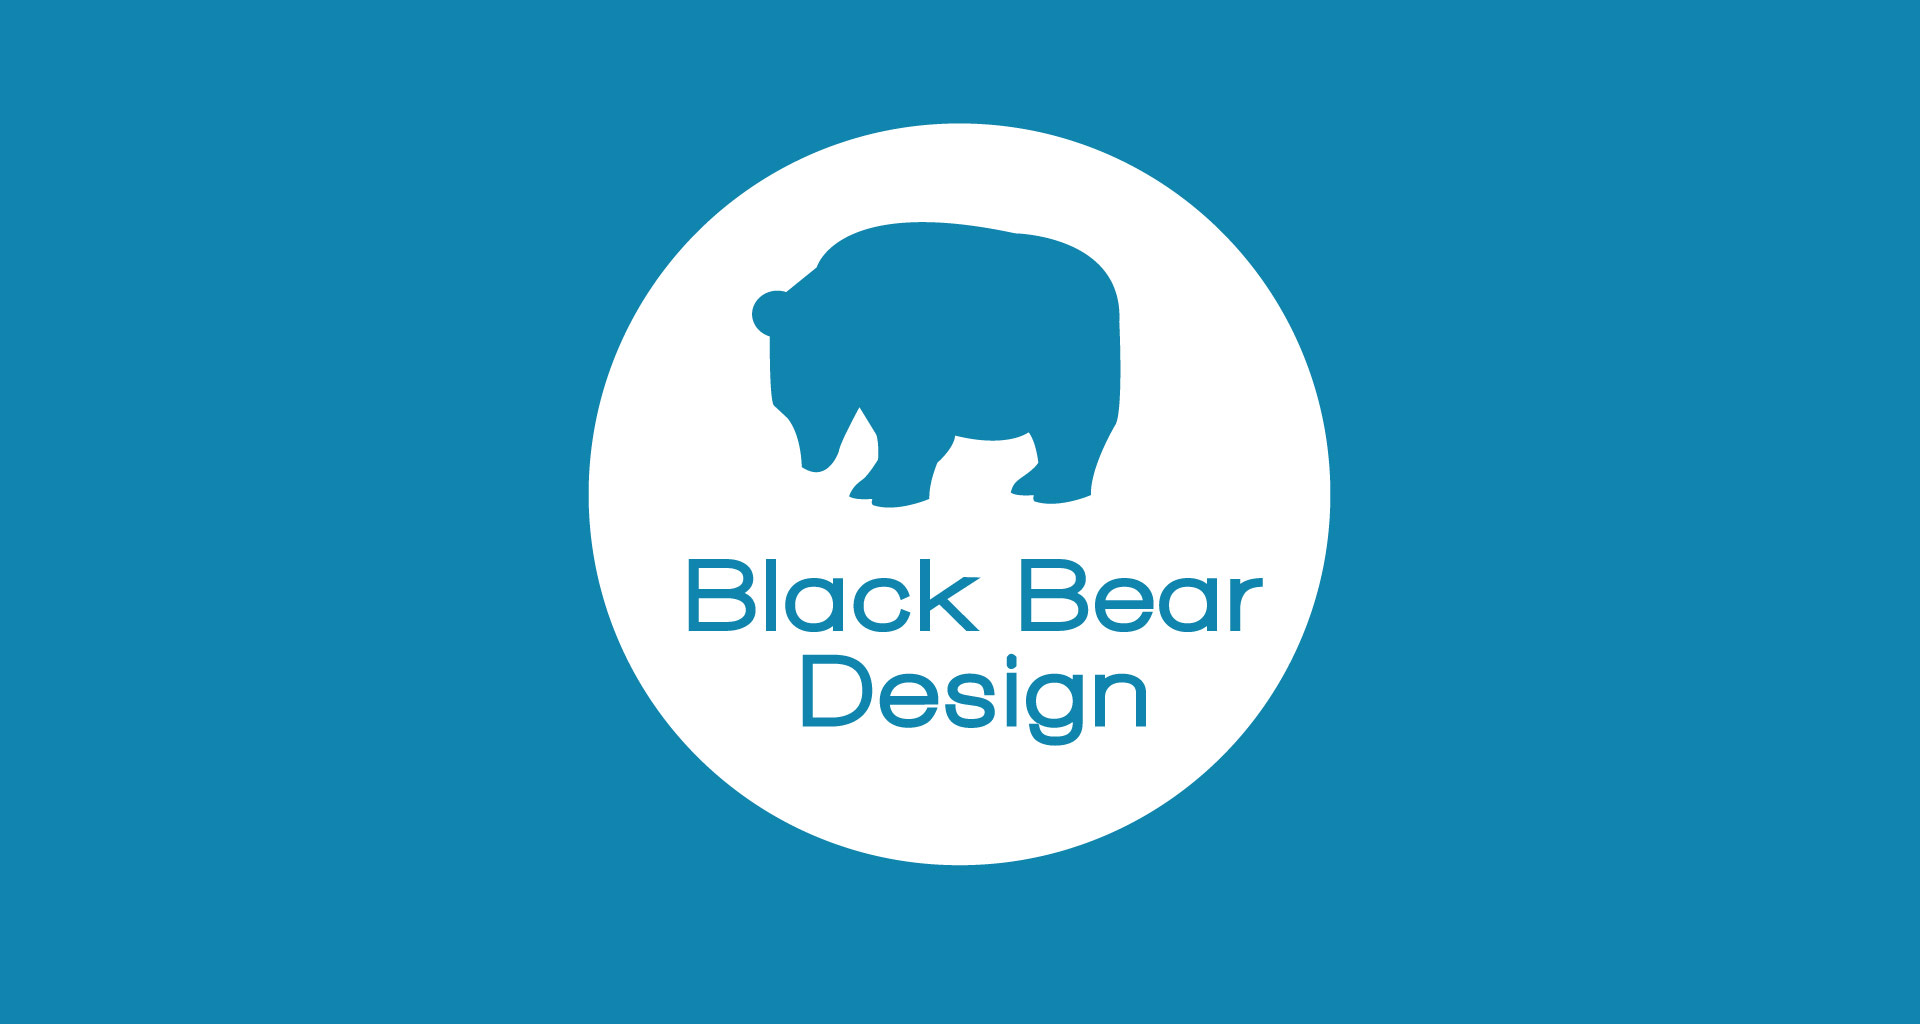 Black Bear Design Group